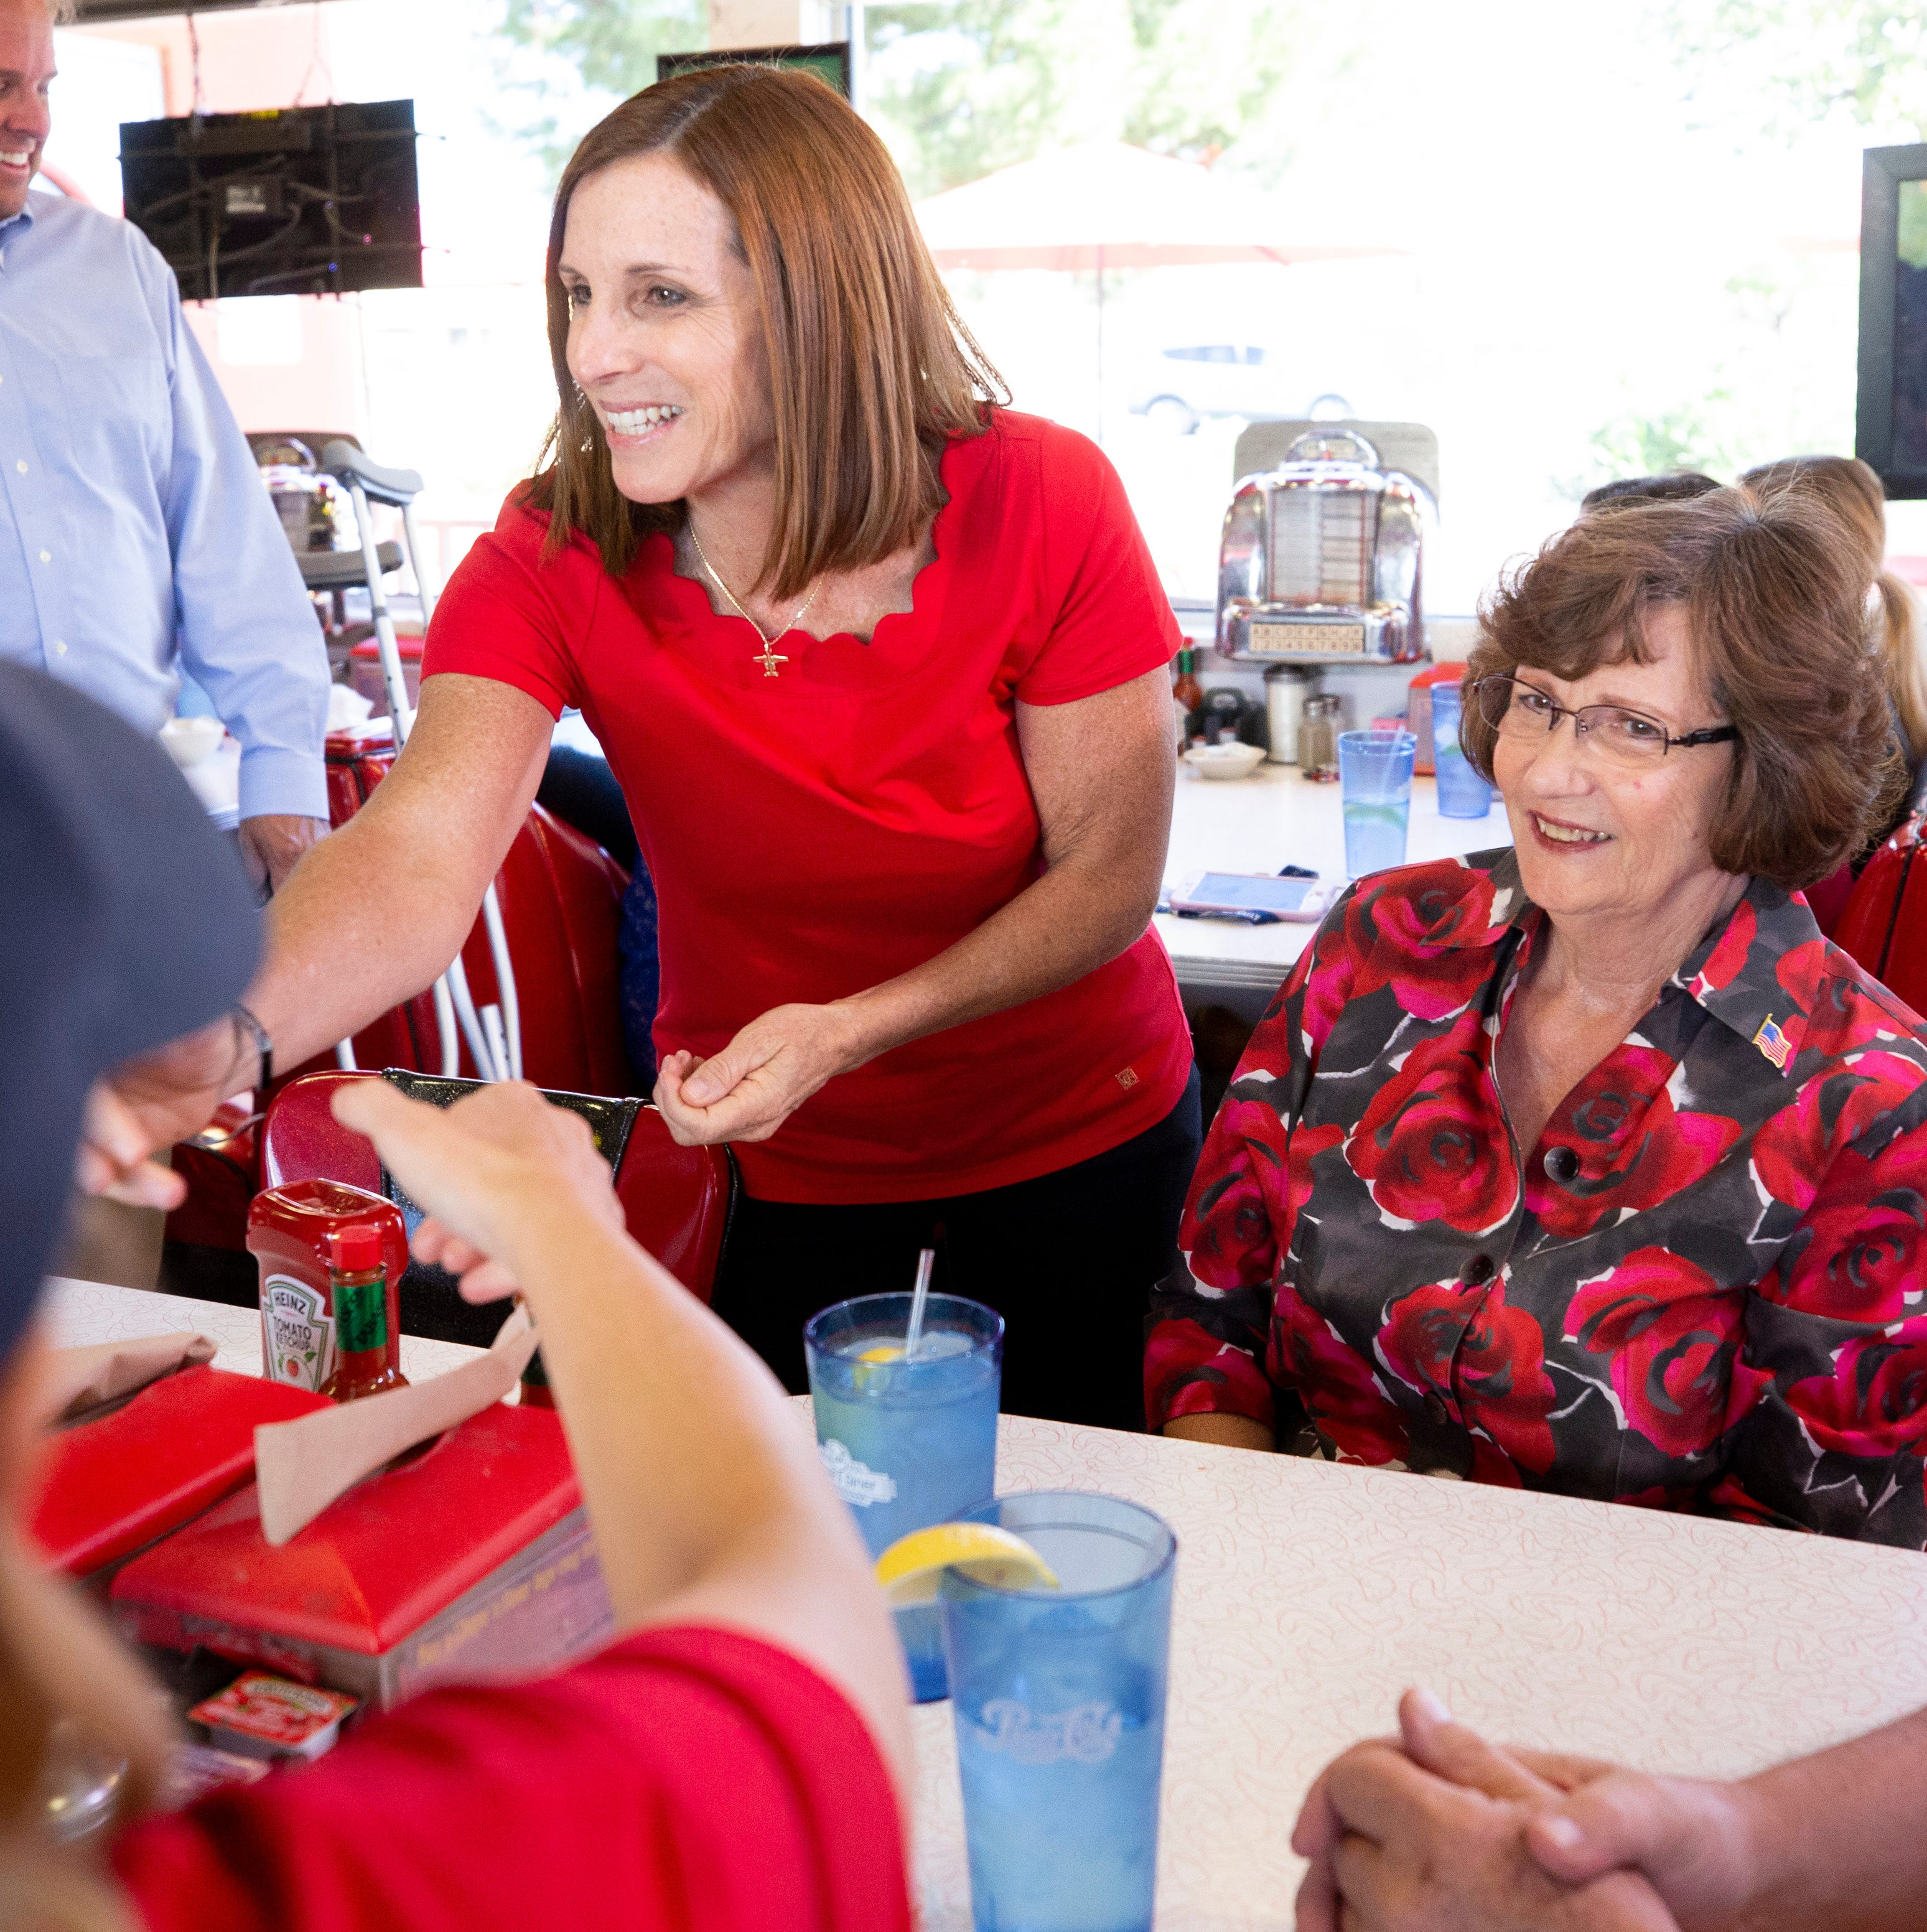 McSally should join Sinema in U.S. Senate